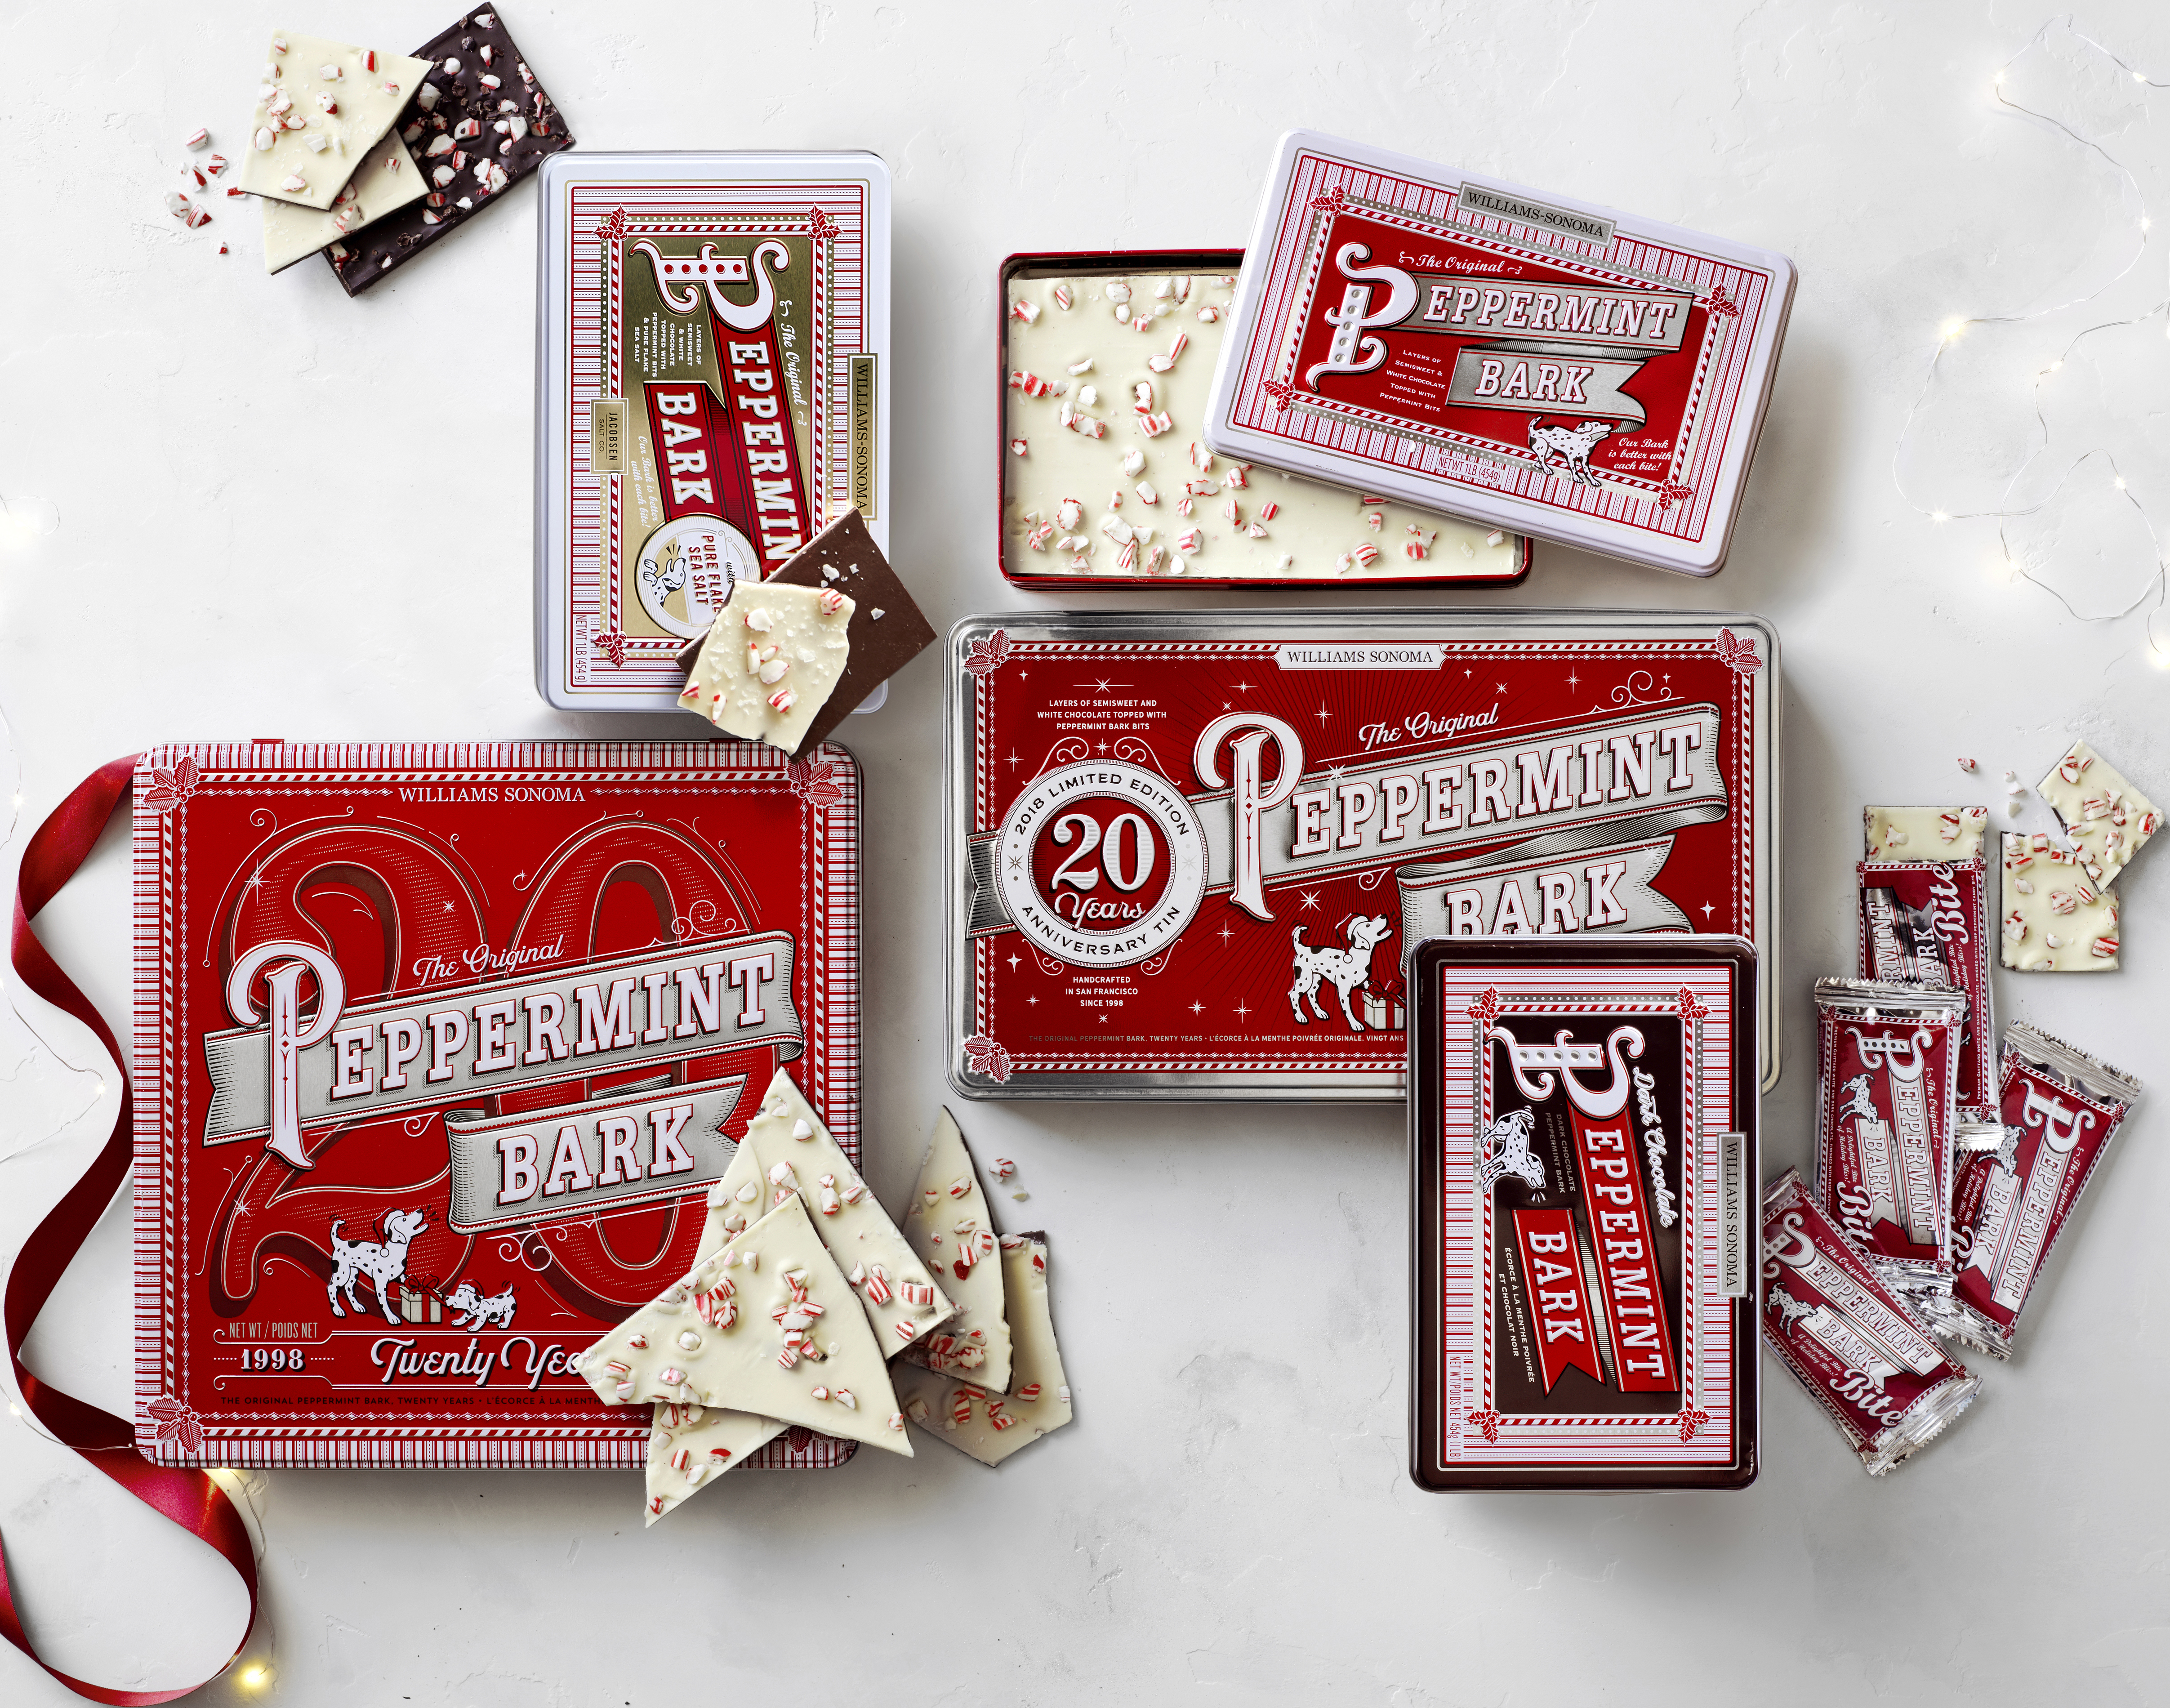 Williams Sonoma celebrates 20 years of iconic Peppermint Bark holiday confection (Photo Business Wire)